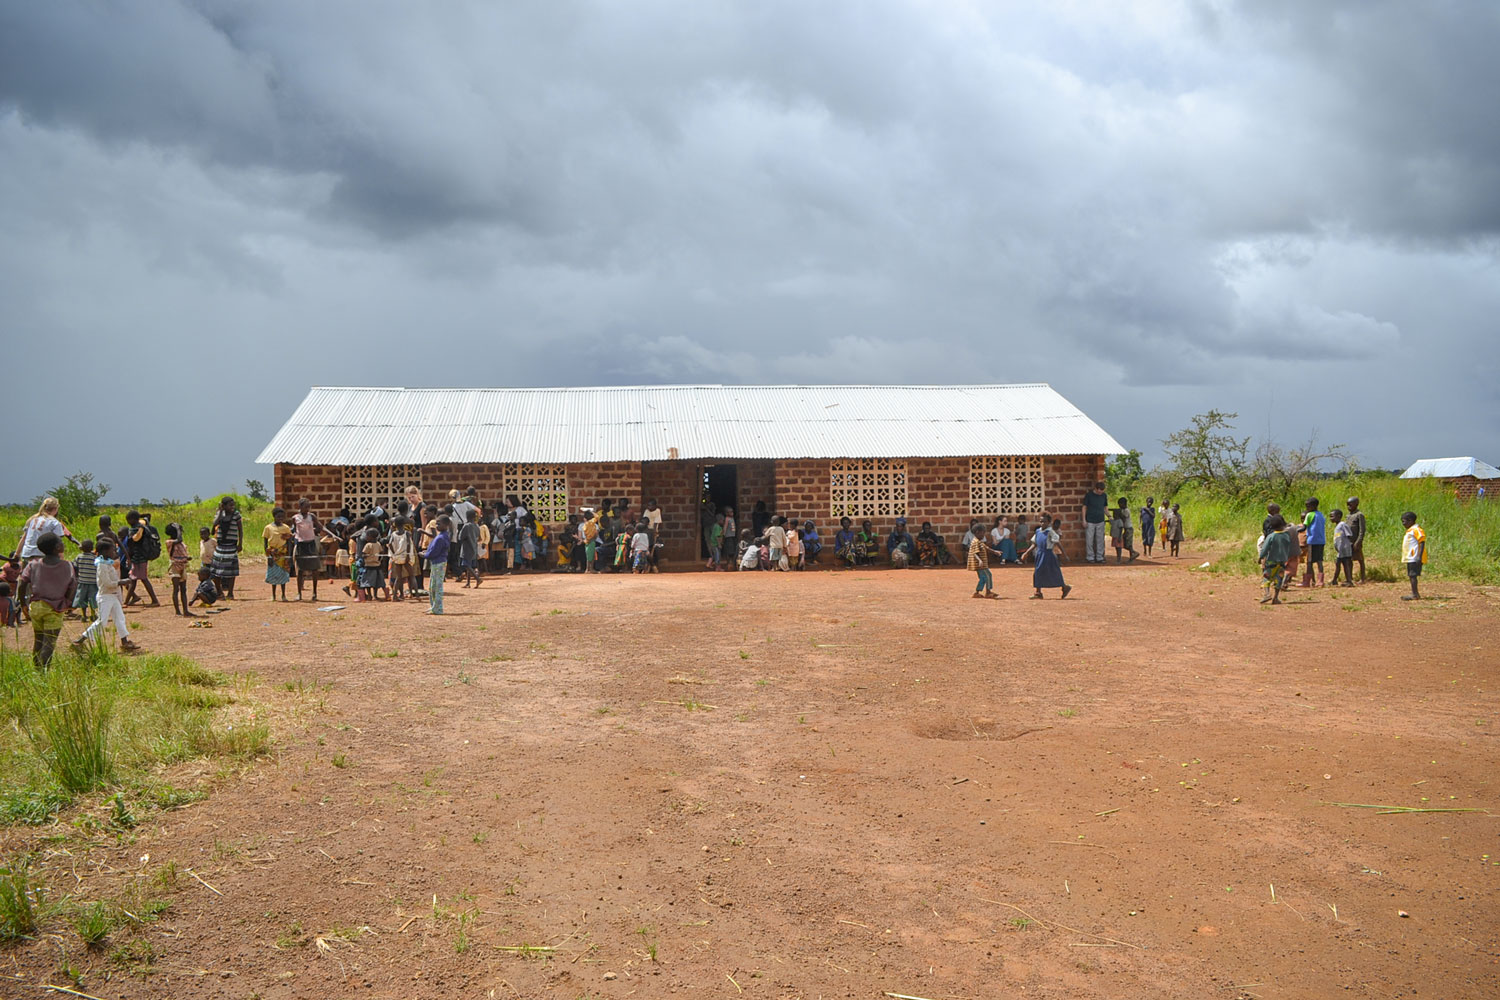 At the Maranatha Care Point, 65 of the most vulnerable children in this community receive a daily meal, access to education and access to basic health care.